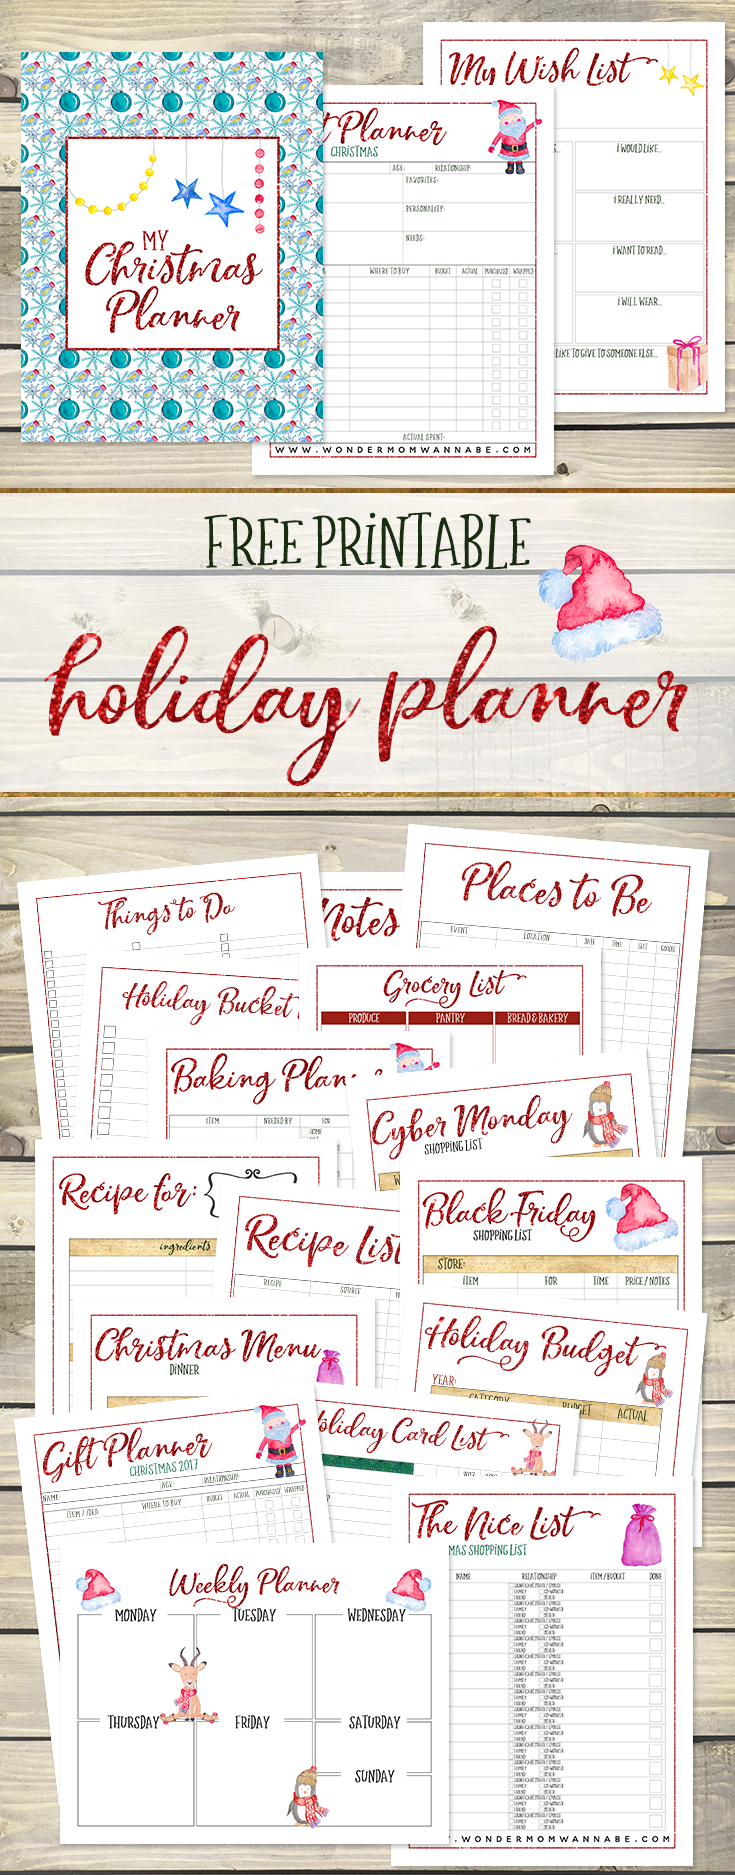 photo regarding Free Christmas Planner Printables identify Totally free Printable Final Xmas Planner - Monetary Conserving Mother